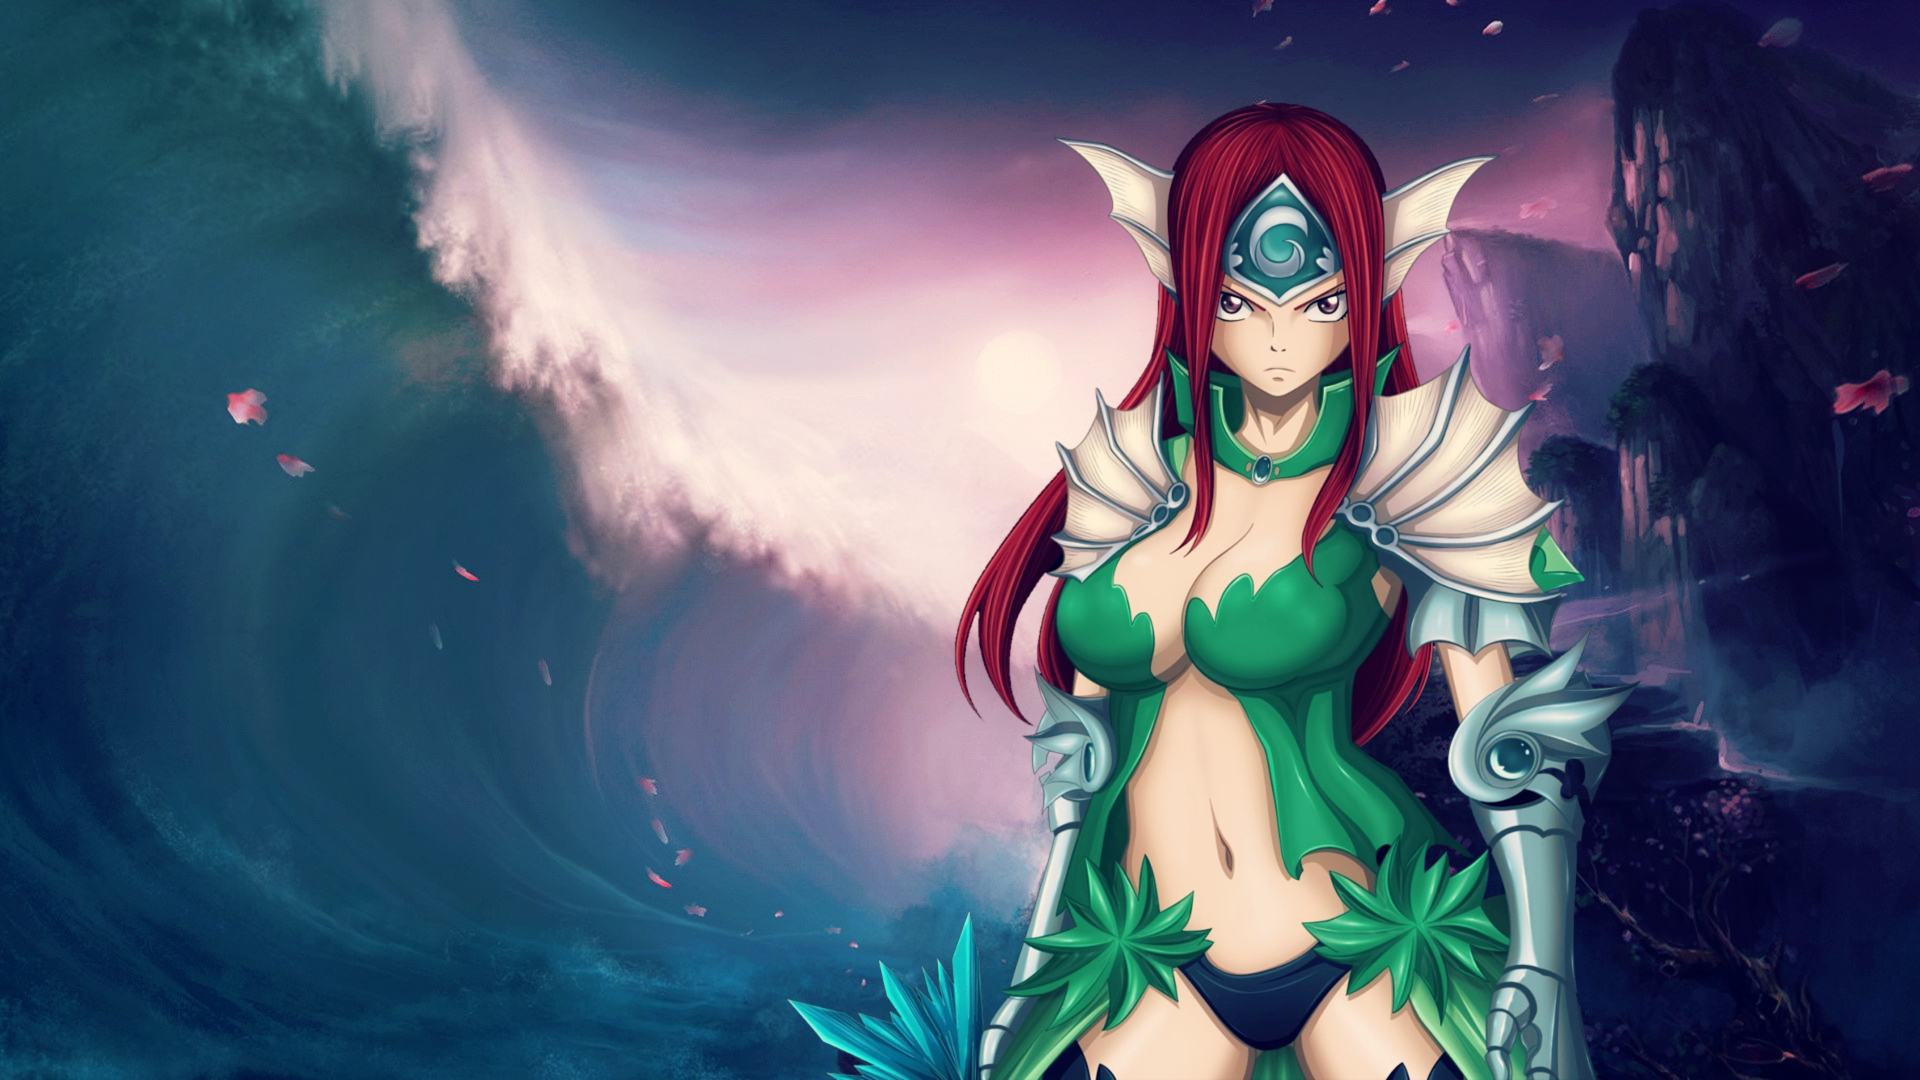 Erza Scarlet - Queen of the sea Computer Wallpapers, Desktop ...: https://wall.alphacoders.com/big.php?i=493357